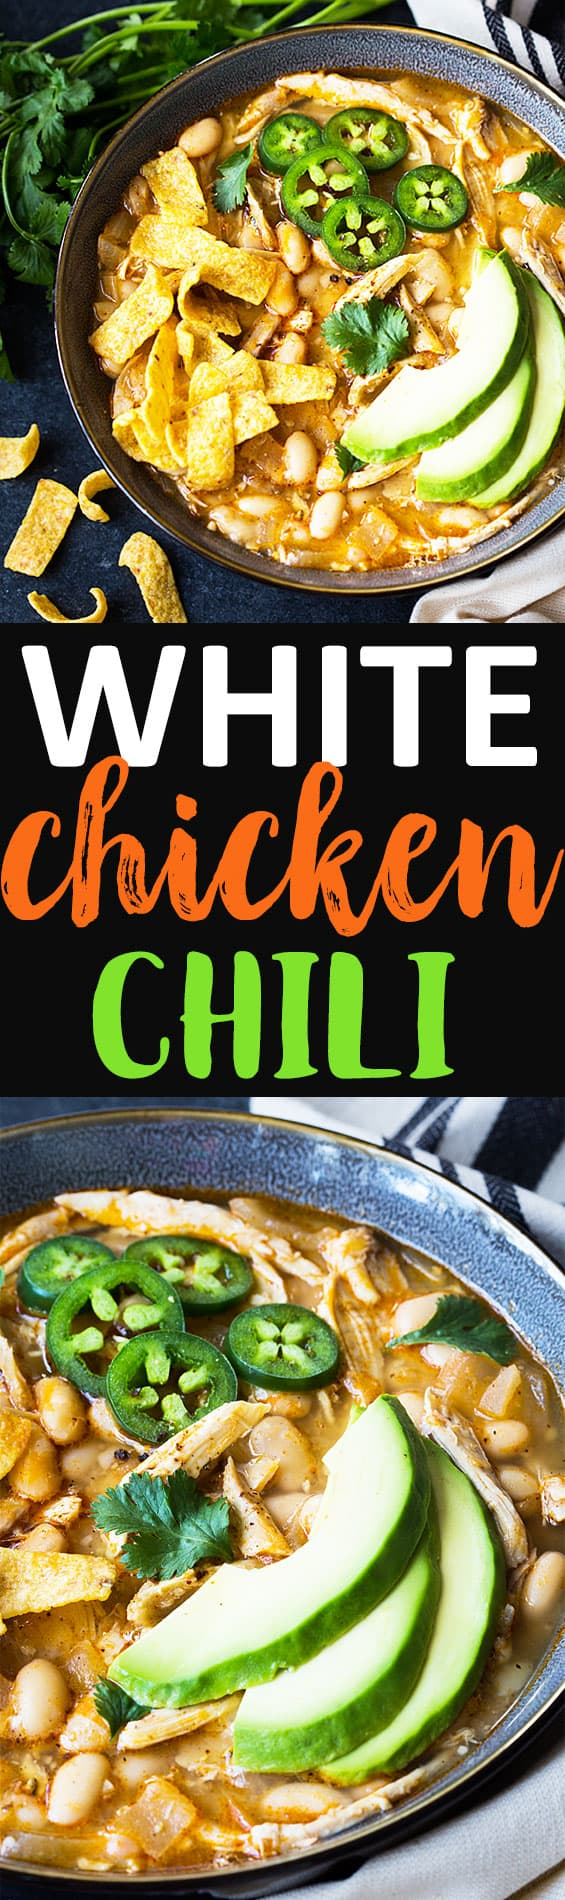 Two images of chili in a bowl.  Text in center says white chicken chili.